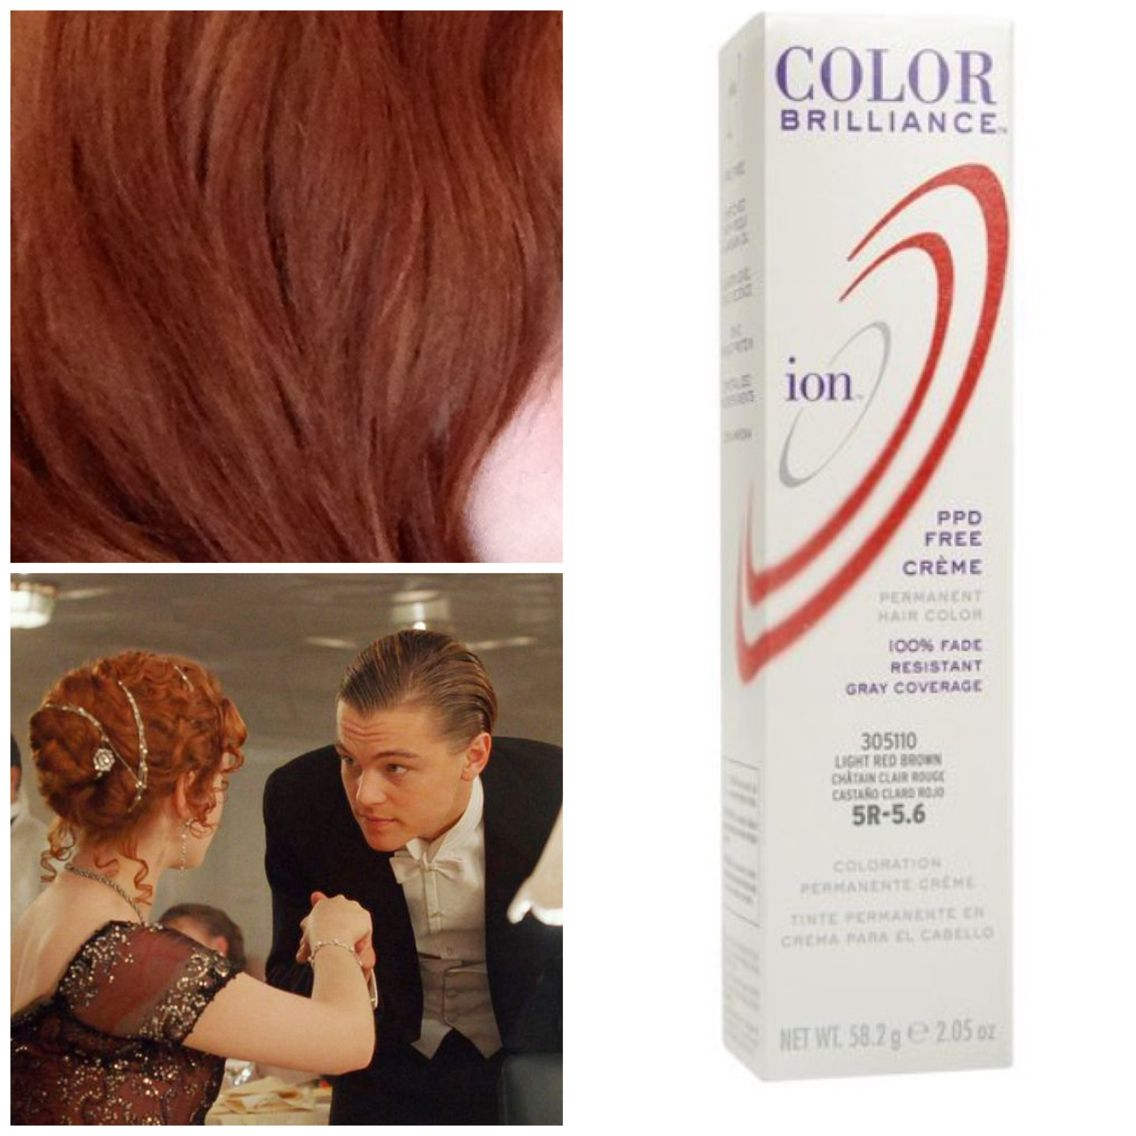 How to get rose   hair color from titanic  started with medium brown all supplies sally beauty supply mix quick white powder bleach also ion brilliance mochas wr gold mahogany rh pinterest